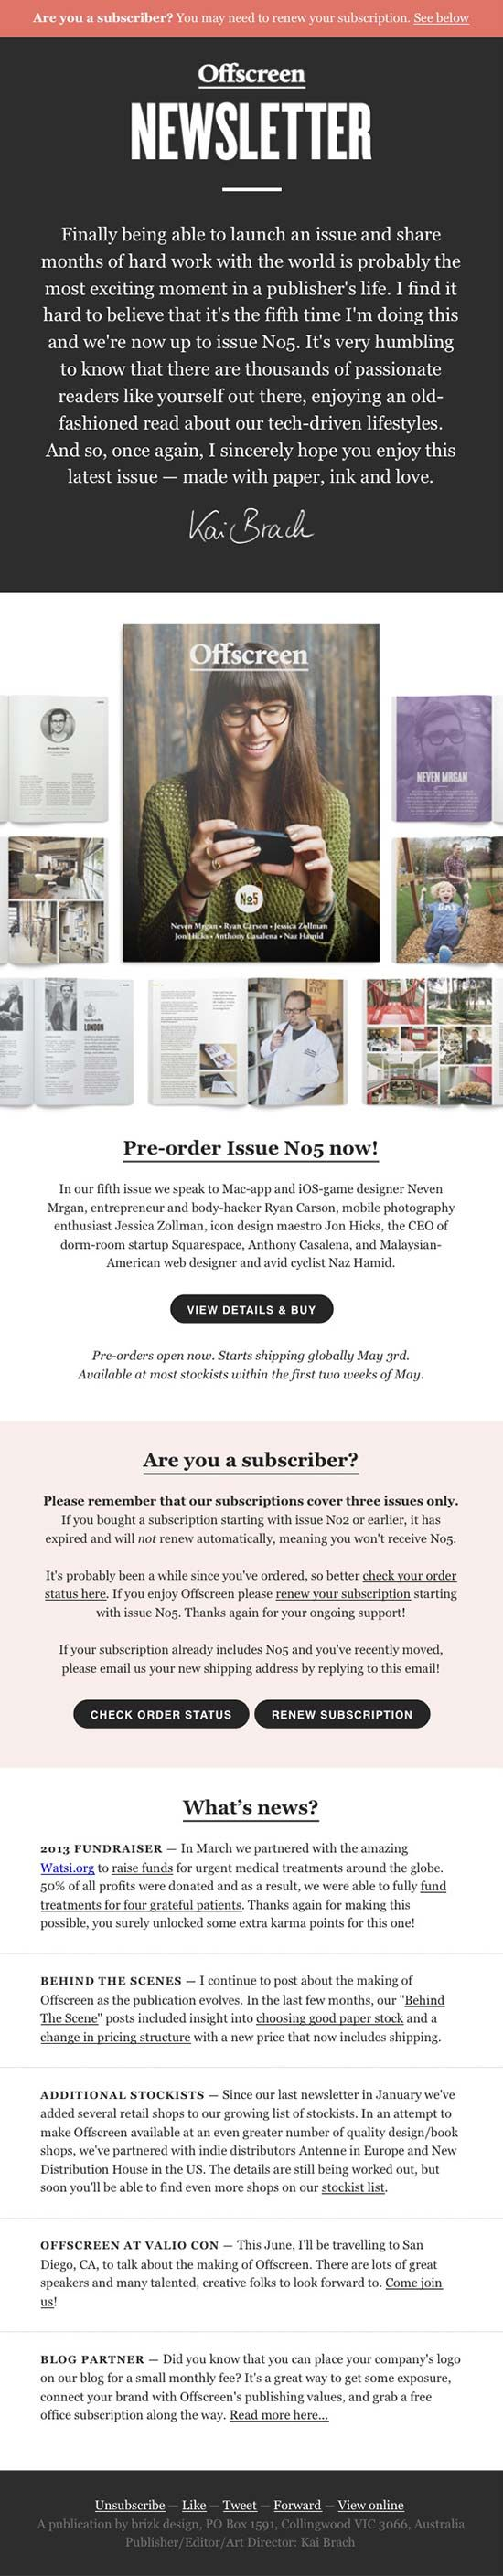 47 best email design images on pinterest email newsletter design product update email design from offscreen magazine altavistaventures Image collections